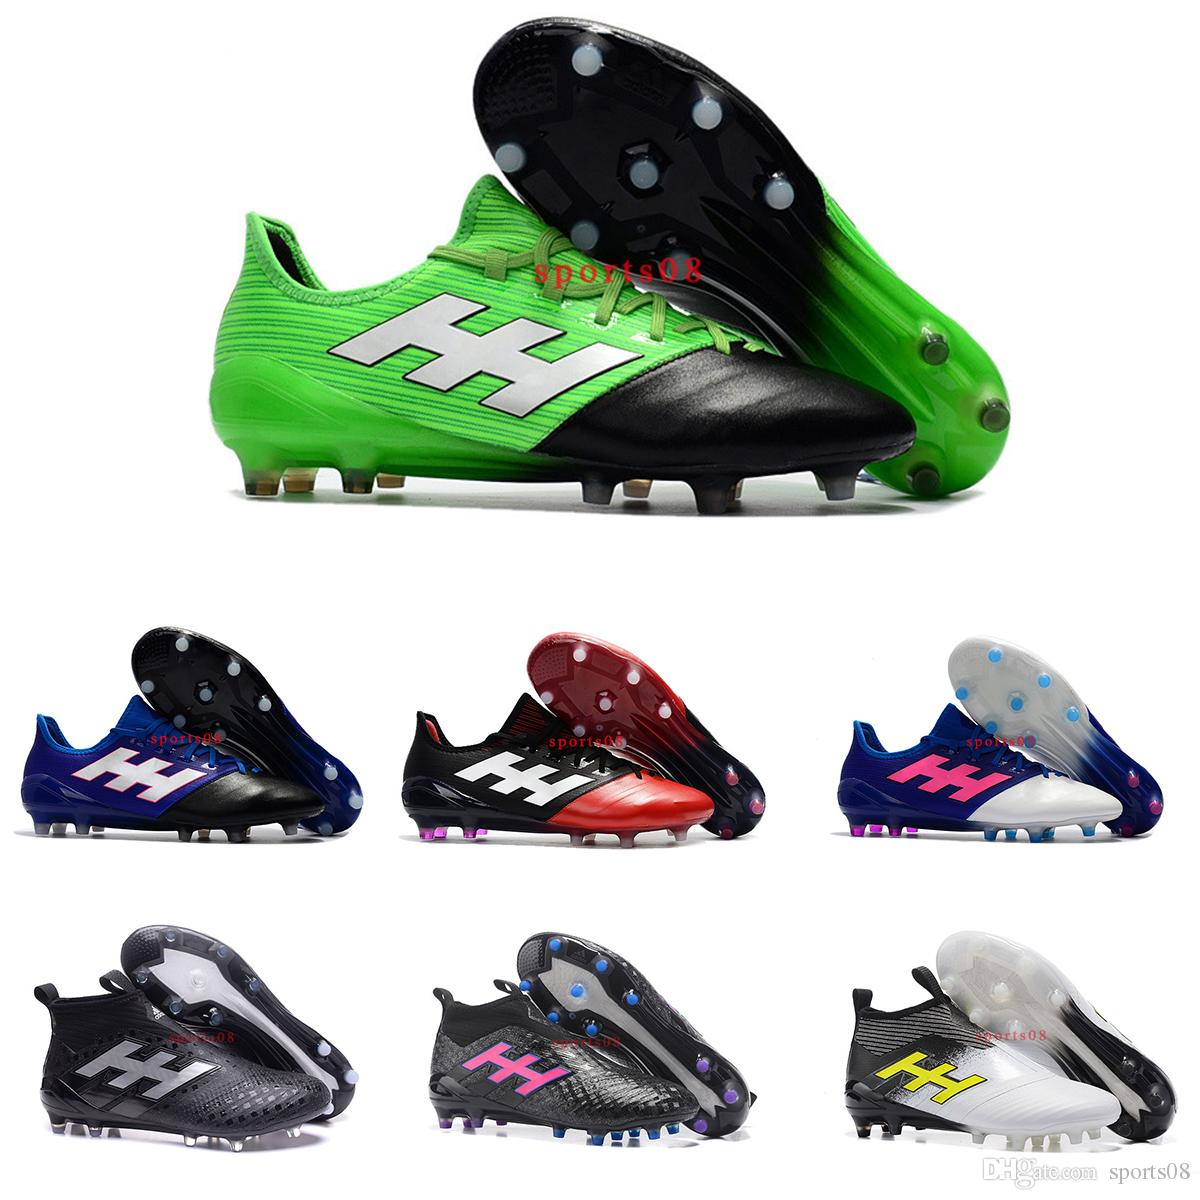 2017 New Arrival Mens ACE 17.1 Leather FG Soccer Shoes ACE 17 Purecontrol Soccer  Cleats Original Soft Ground Football Boots Cheap Hot Sale ACE 17.1 Leather  ... 5eabba8d5